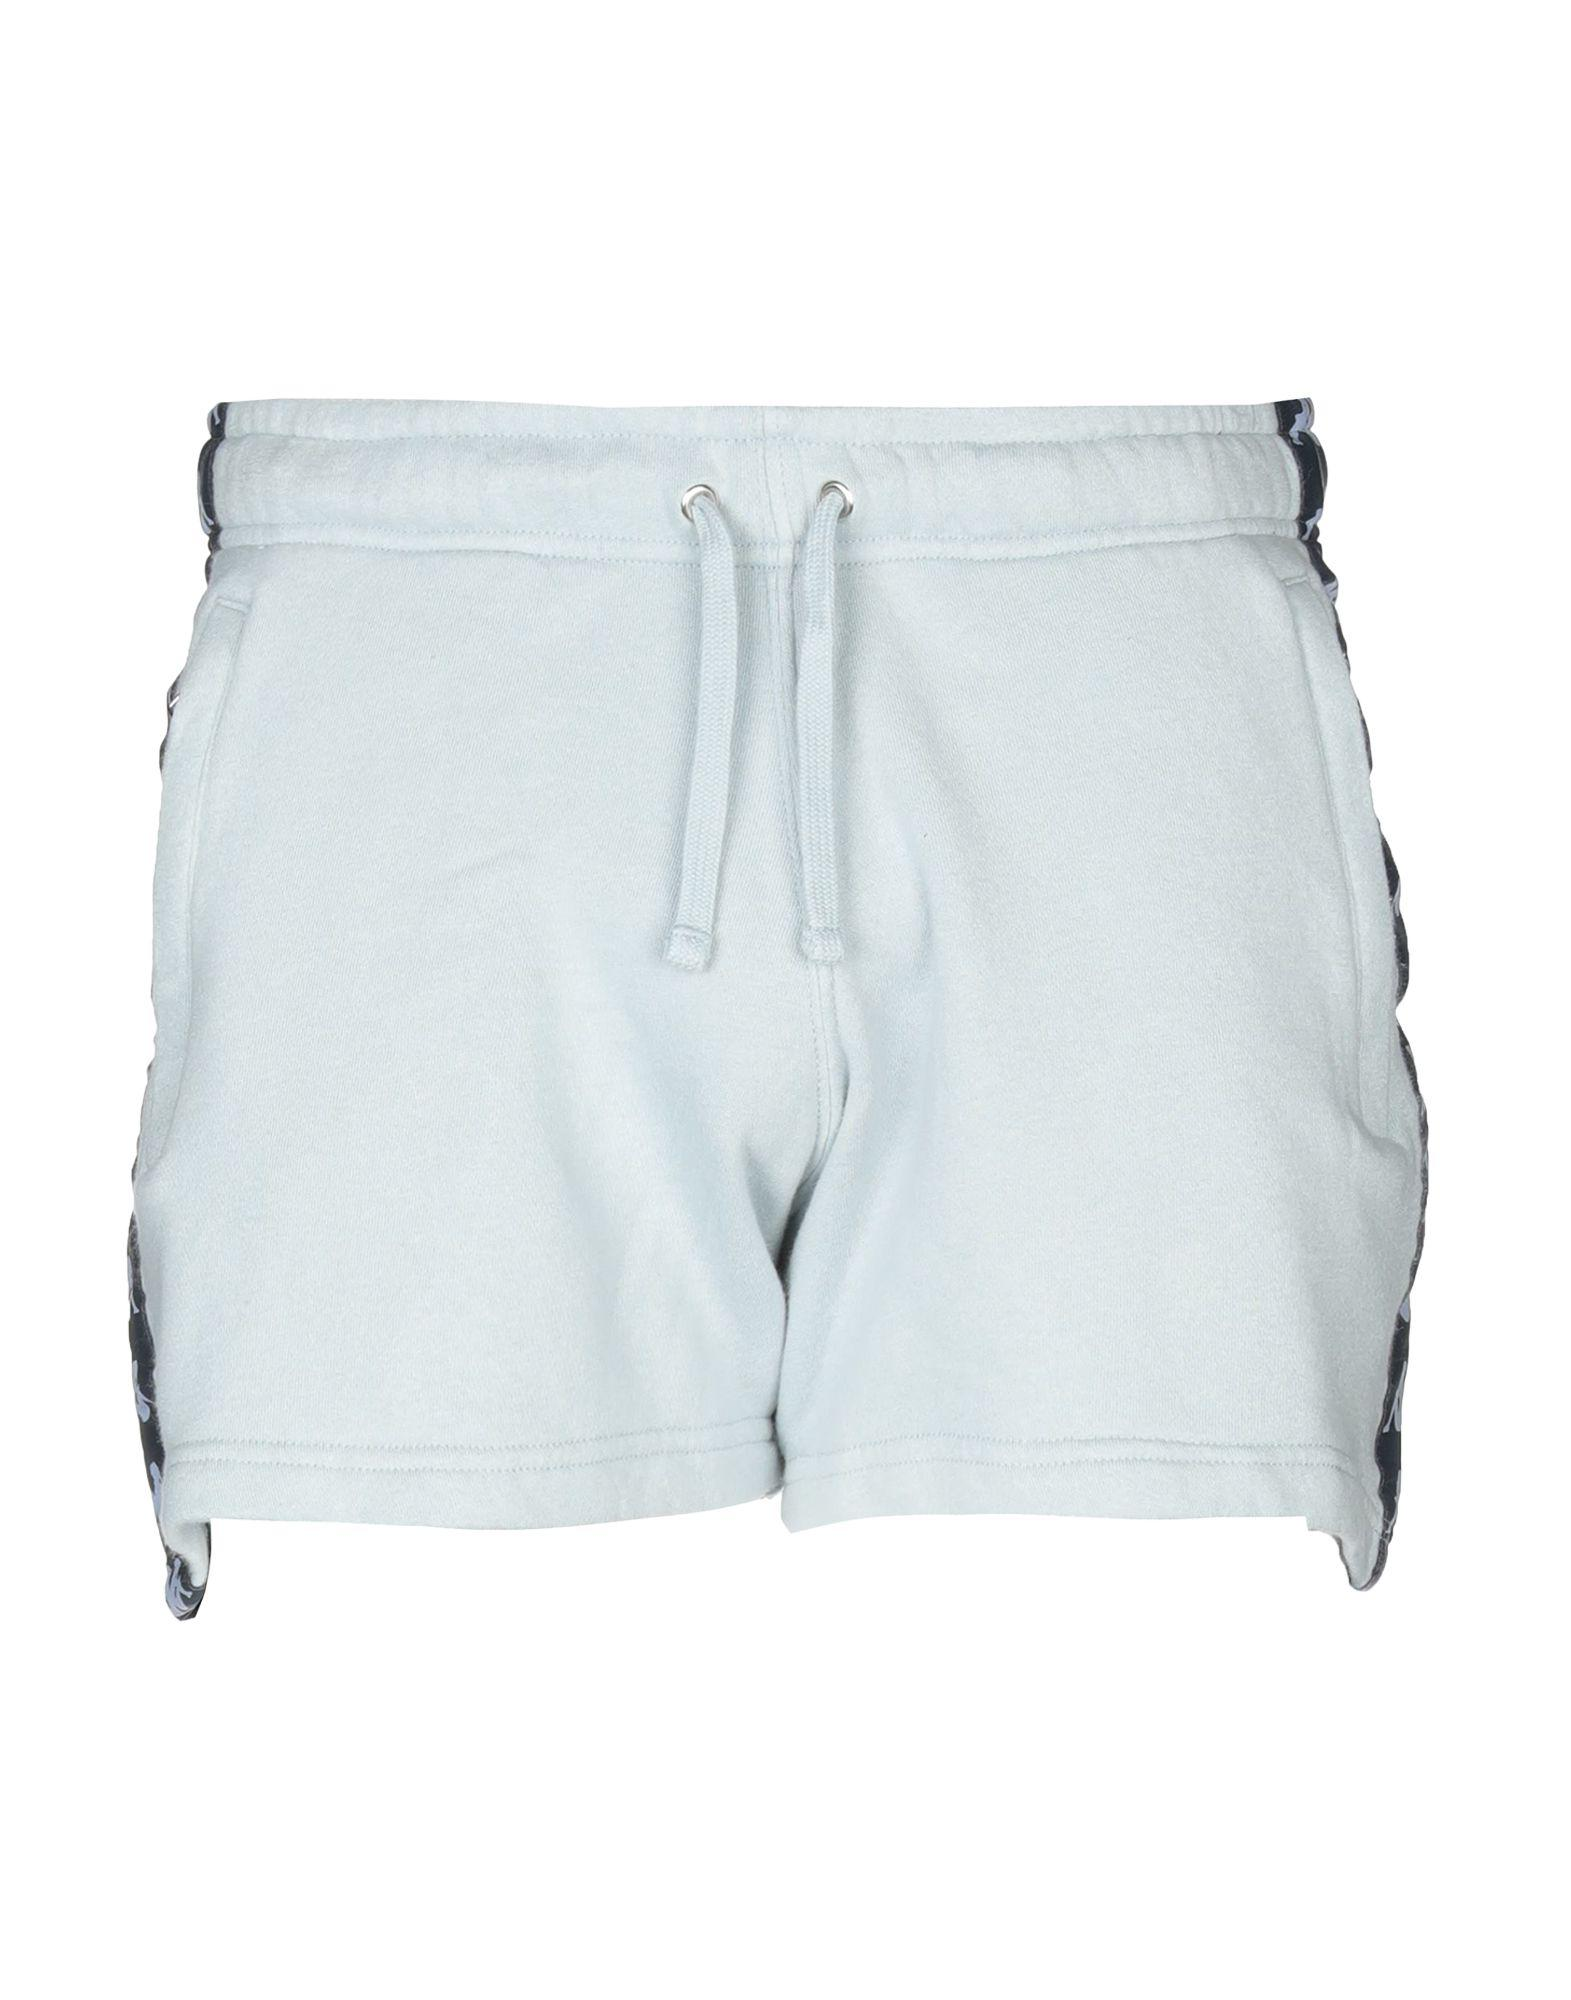 fadc784161939 Lyst - Kappa Shorts in Blue for Men